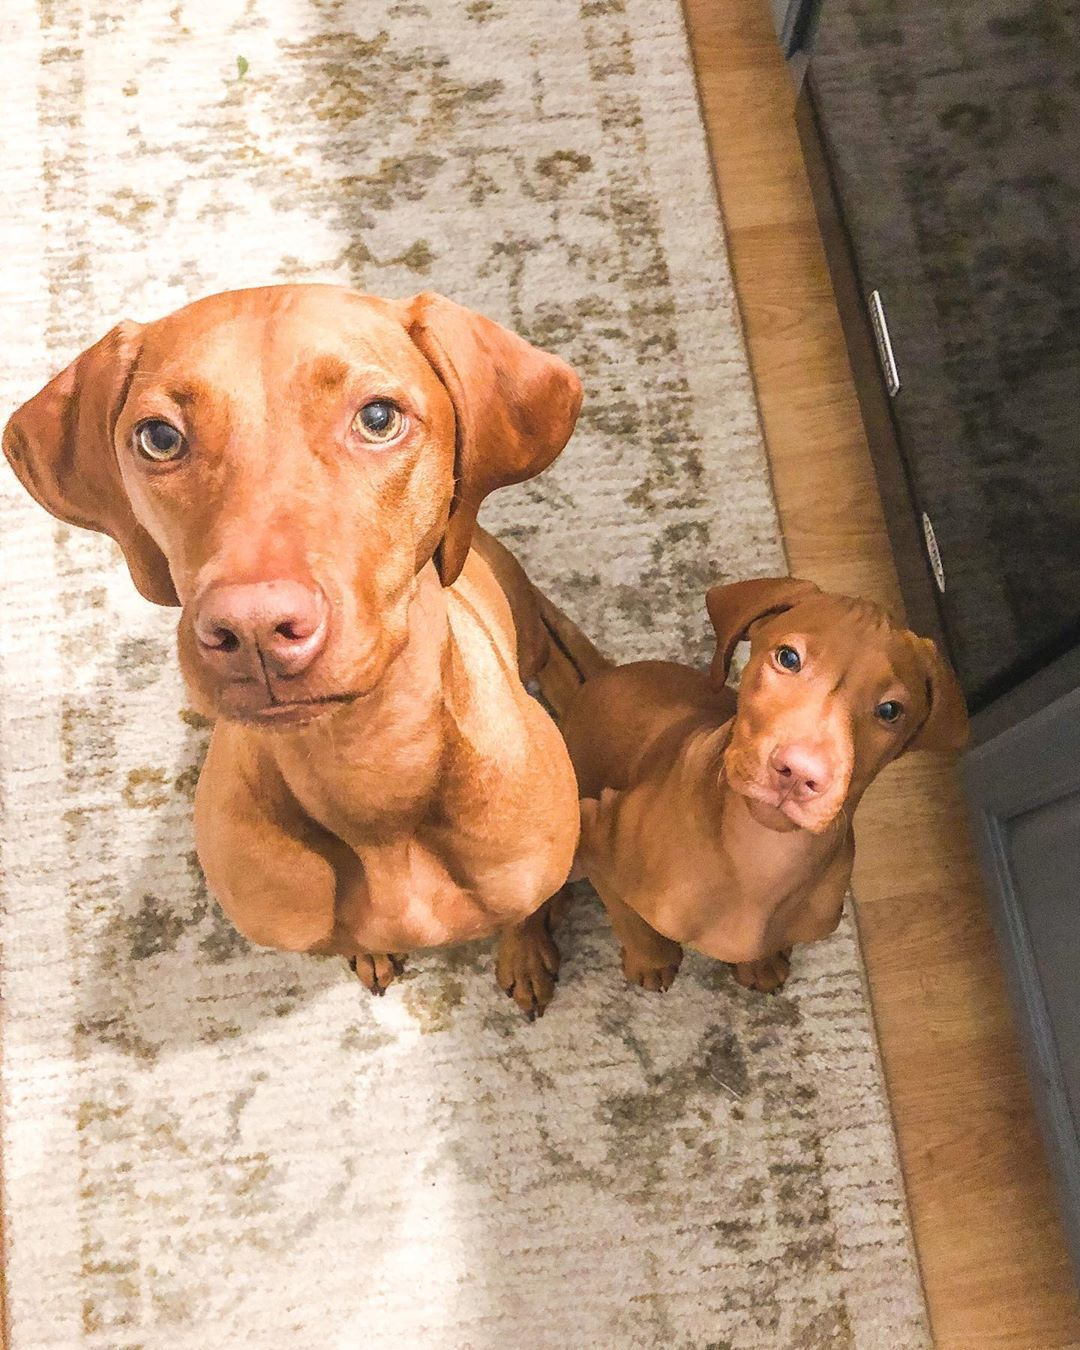 408 Likes 6 Comments Adventures Of Hazel River Hazelandriver On Instagram What You Cookin Up There In 2020 Dog Solution Vizsla Dogs Cute Puppies